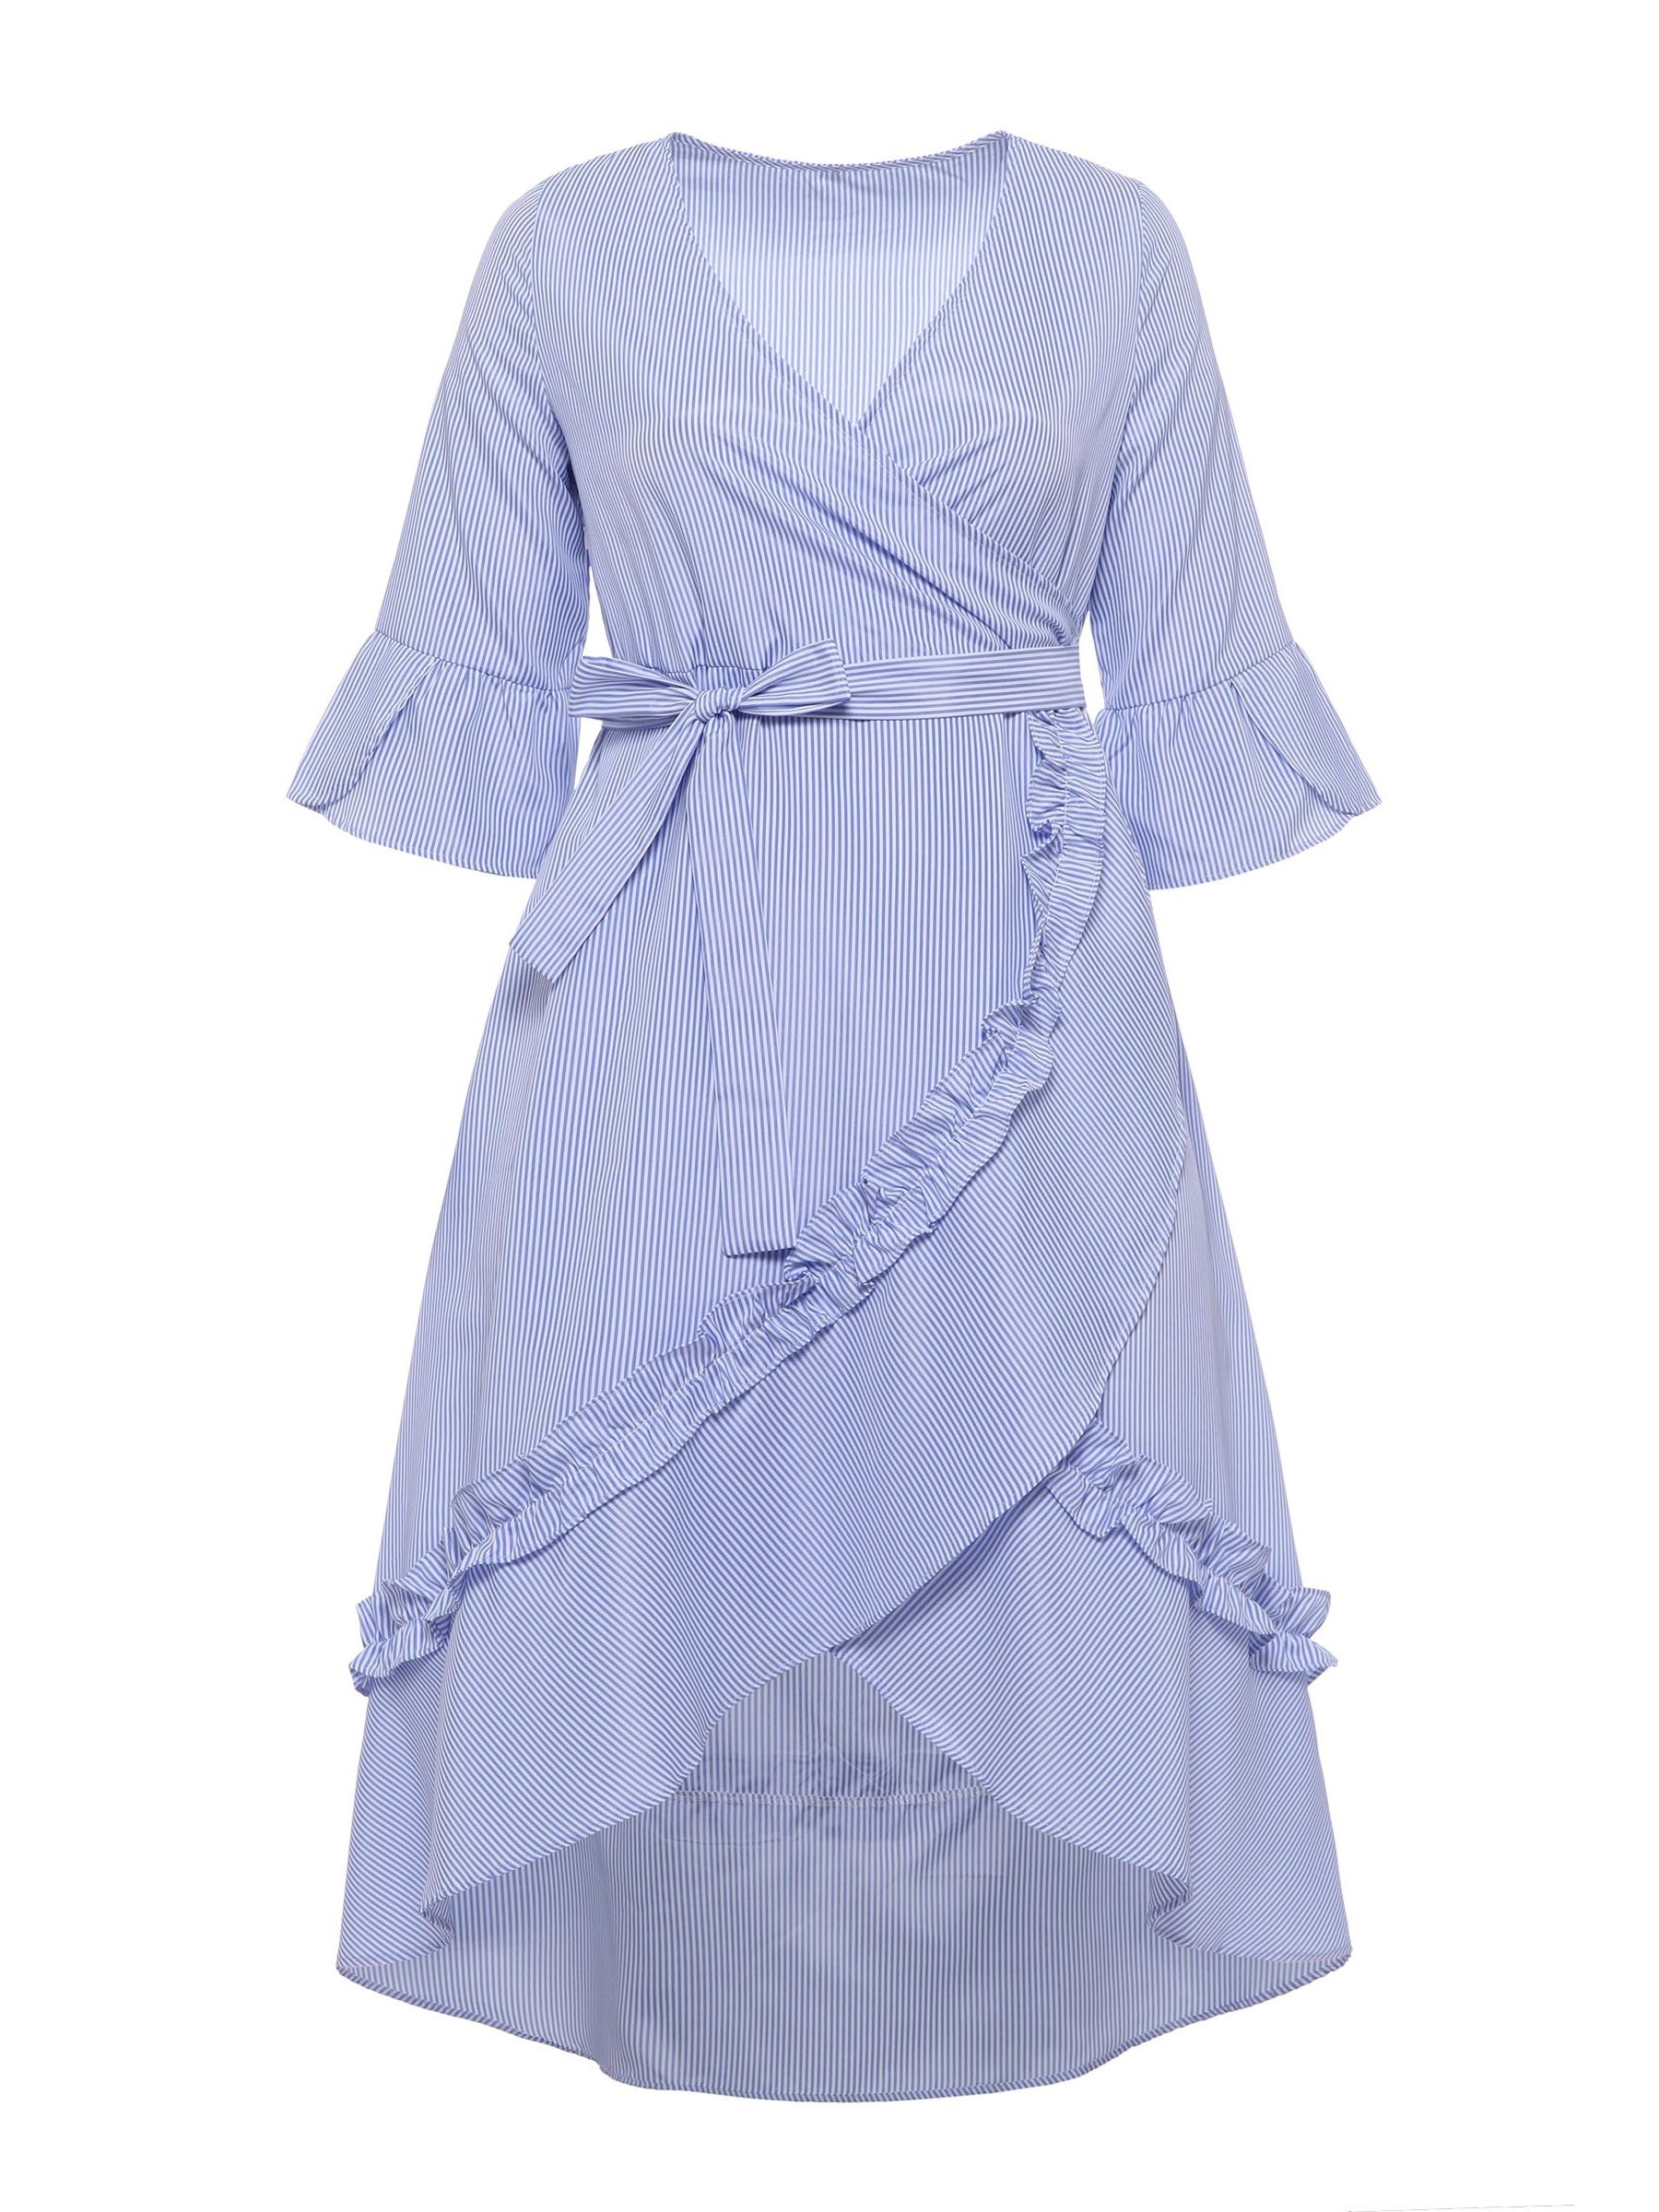 Ericdress Blue Flare Sleeve V-Neck Lace-Up Casual Dress